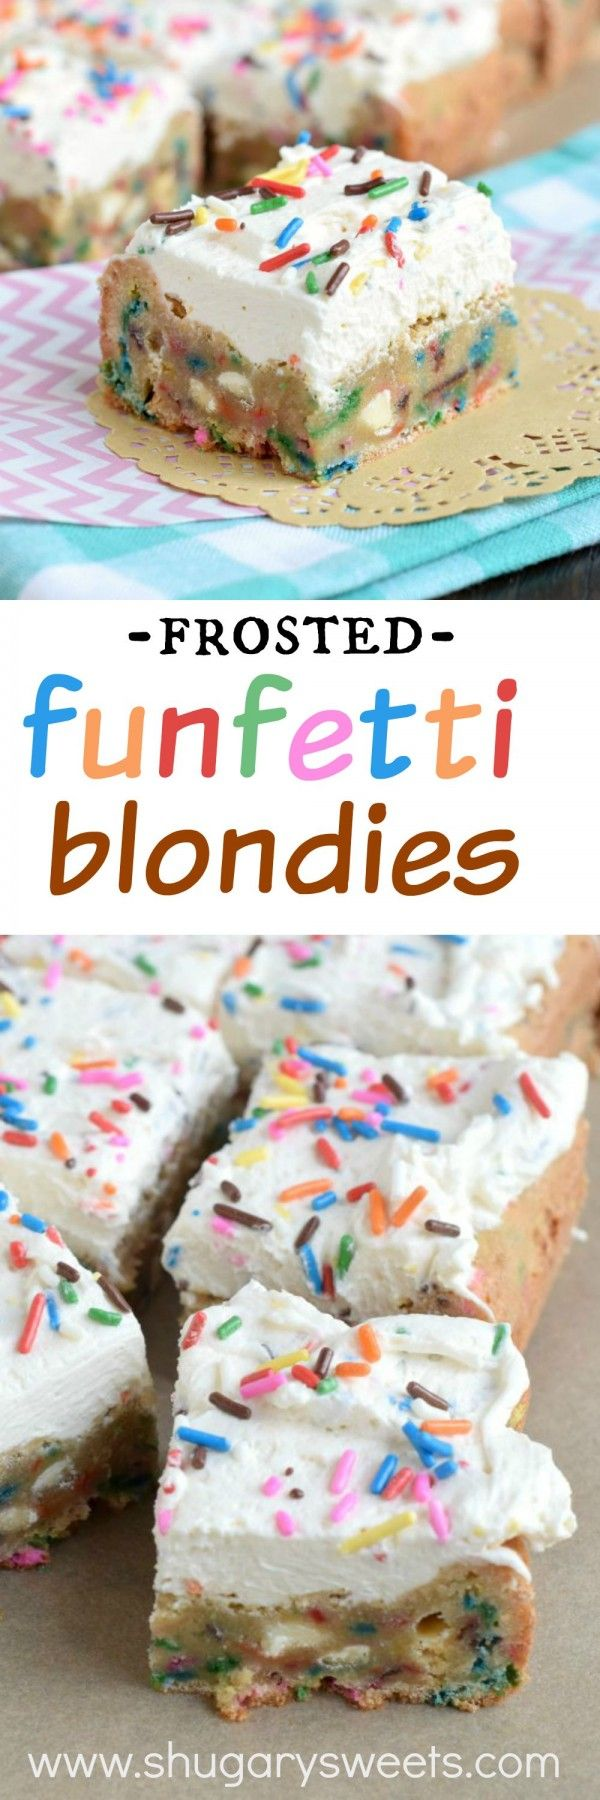 Frosted Funfetti Blondies!! Chewy blondies loaded with colorful sprinkles and topped with a creamy vanilla frosting.